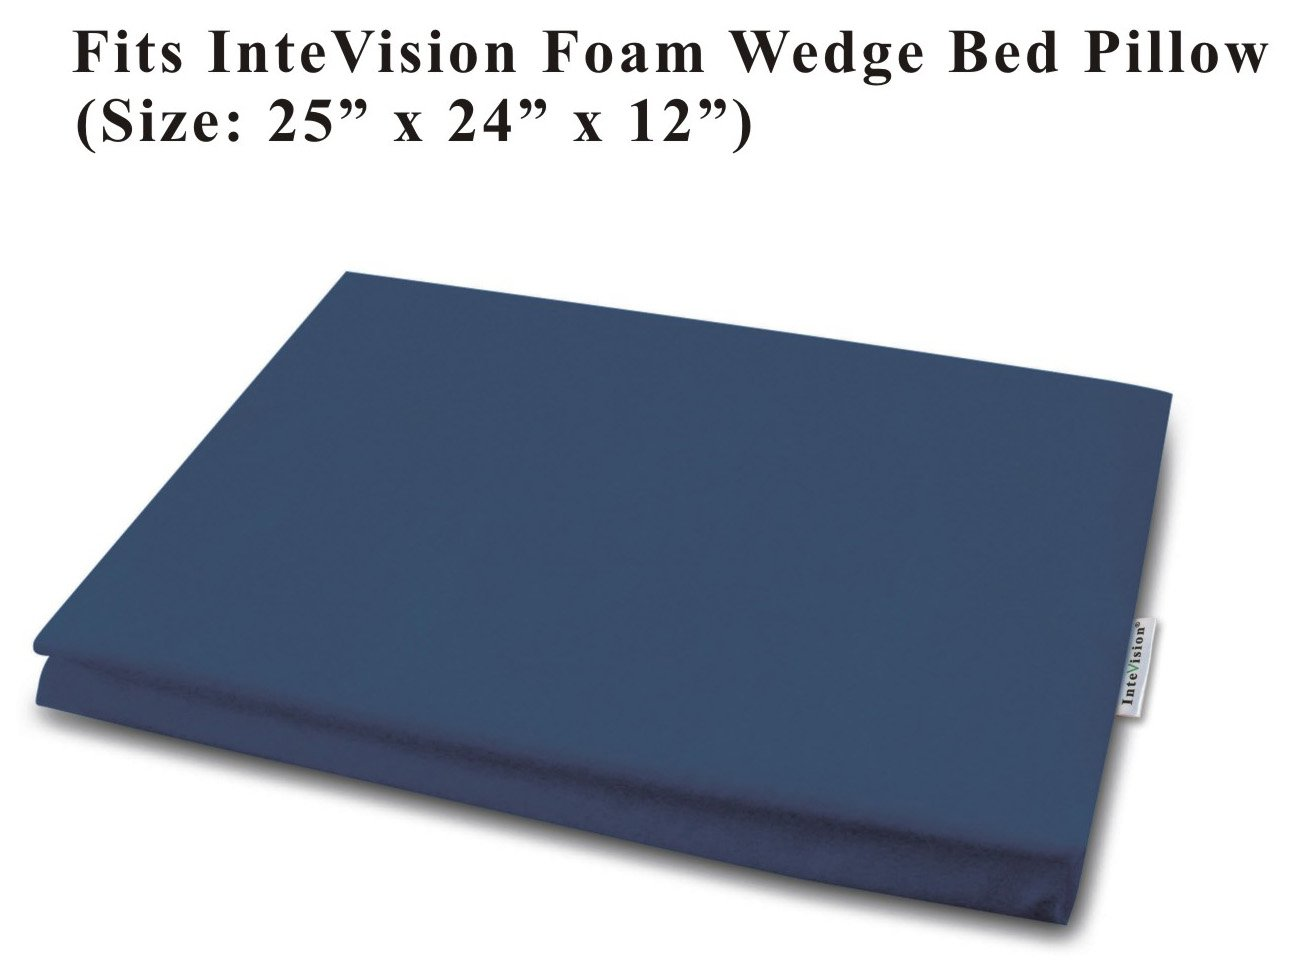 InteVision 400 Thread Count, 100% Egyptian Cotton Bed Wedge Pillowcase; Replacement Cover Designed to Fit the 12'' (Height) Version of the Foam Wedge Bed Pillow (25'' x 24'' x 12'')